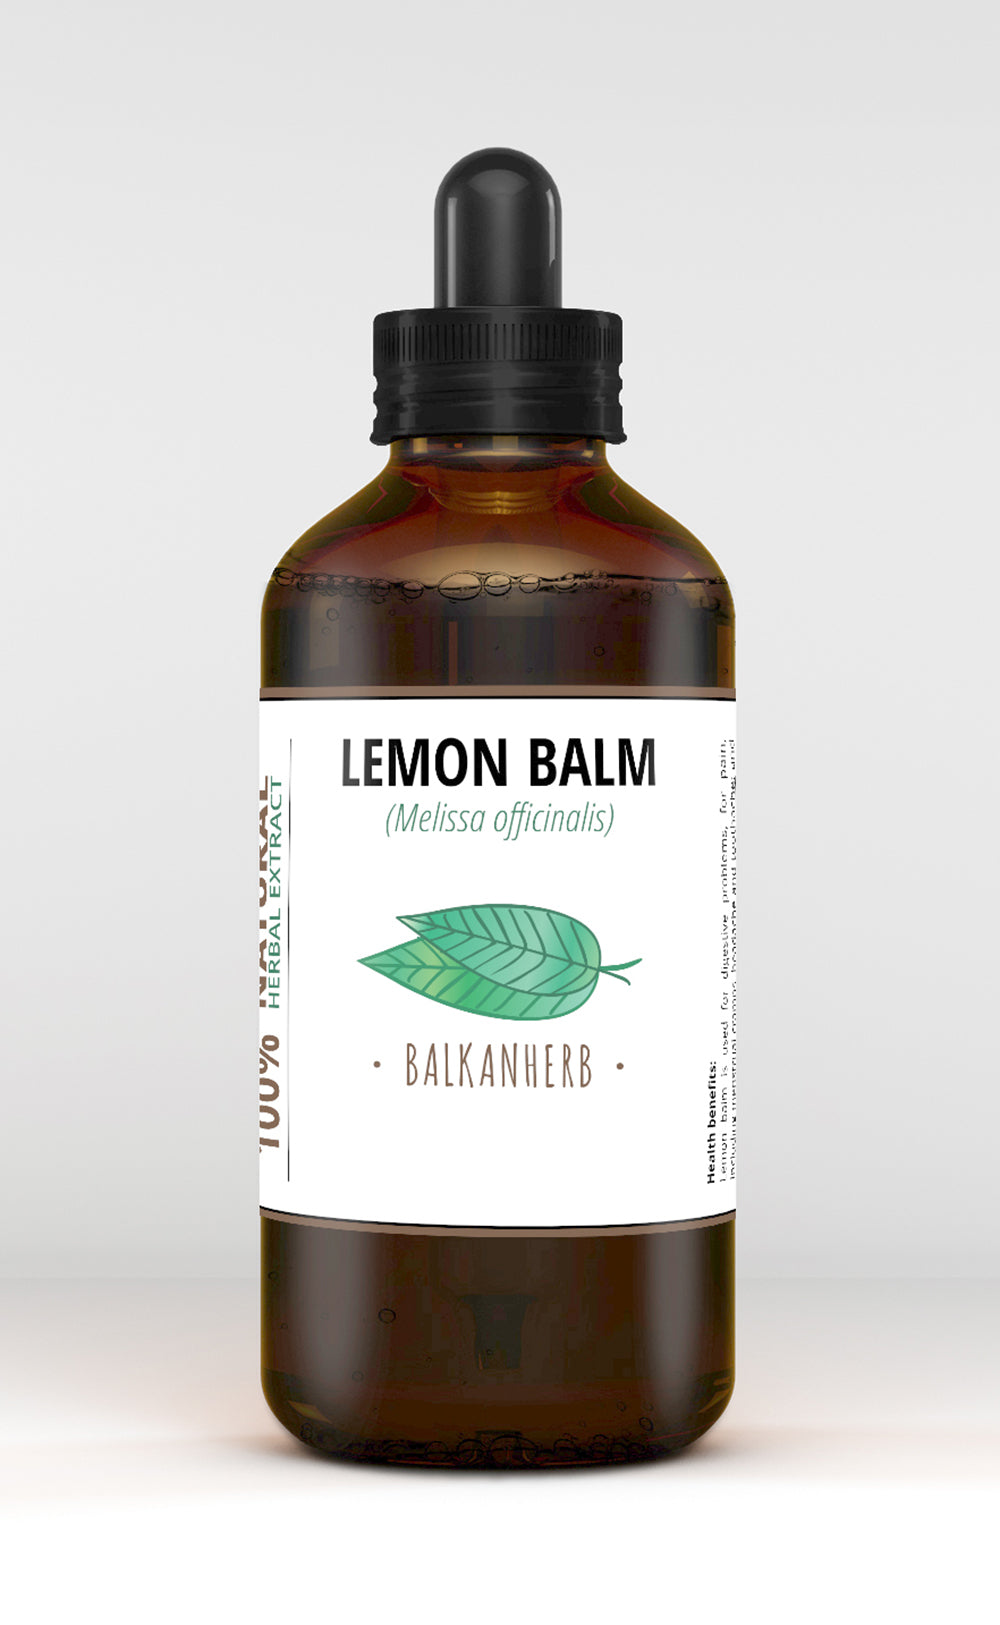 Lemon balm Tincture - Melissa - Organic herb drops - Extract